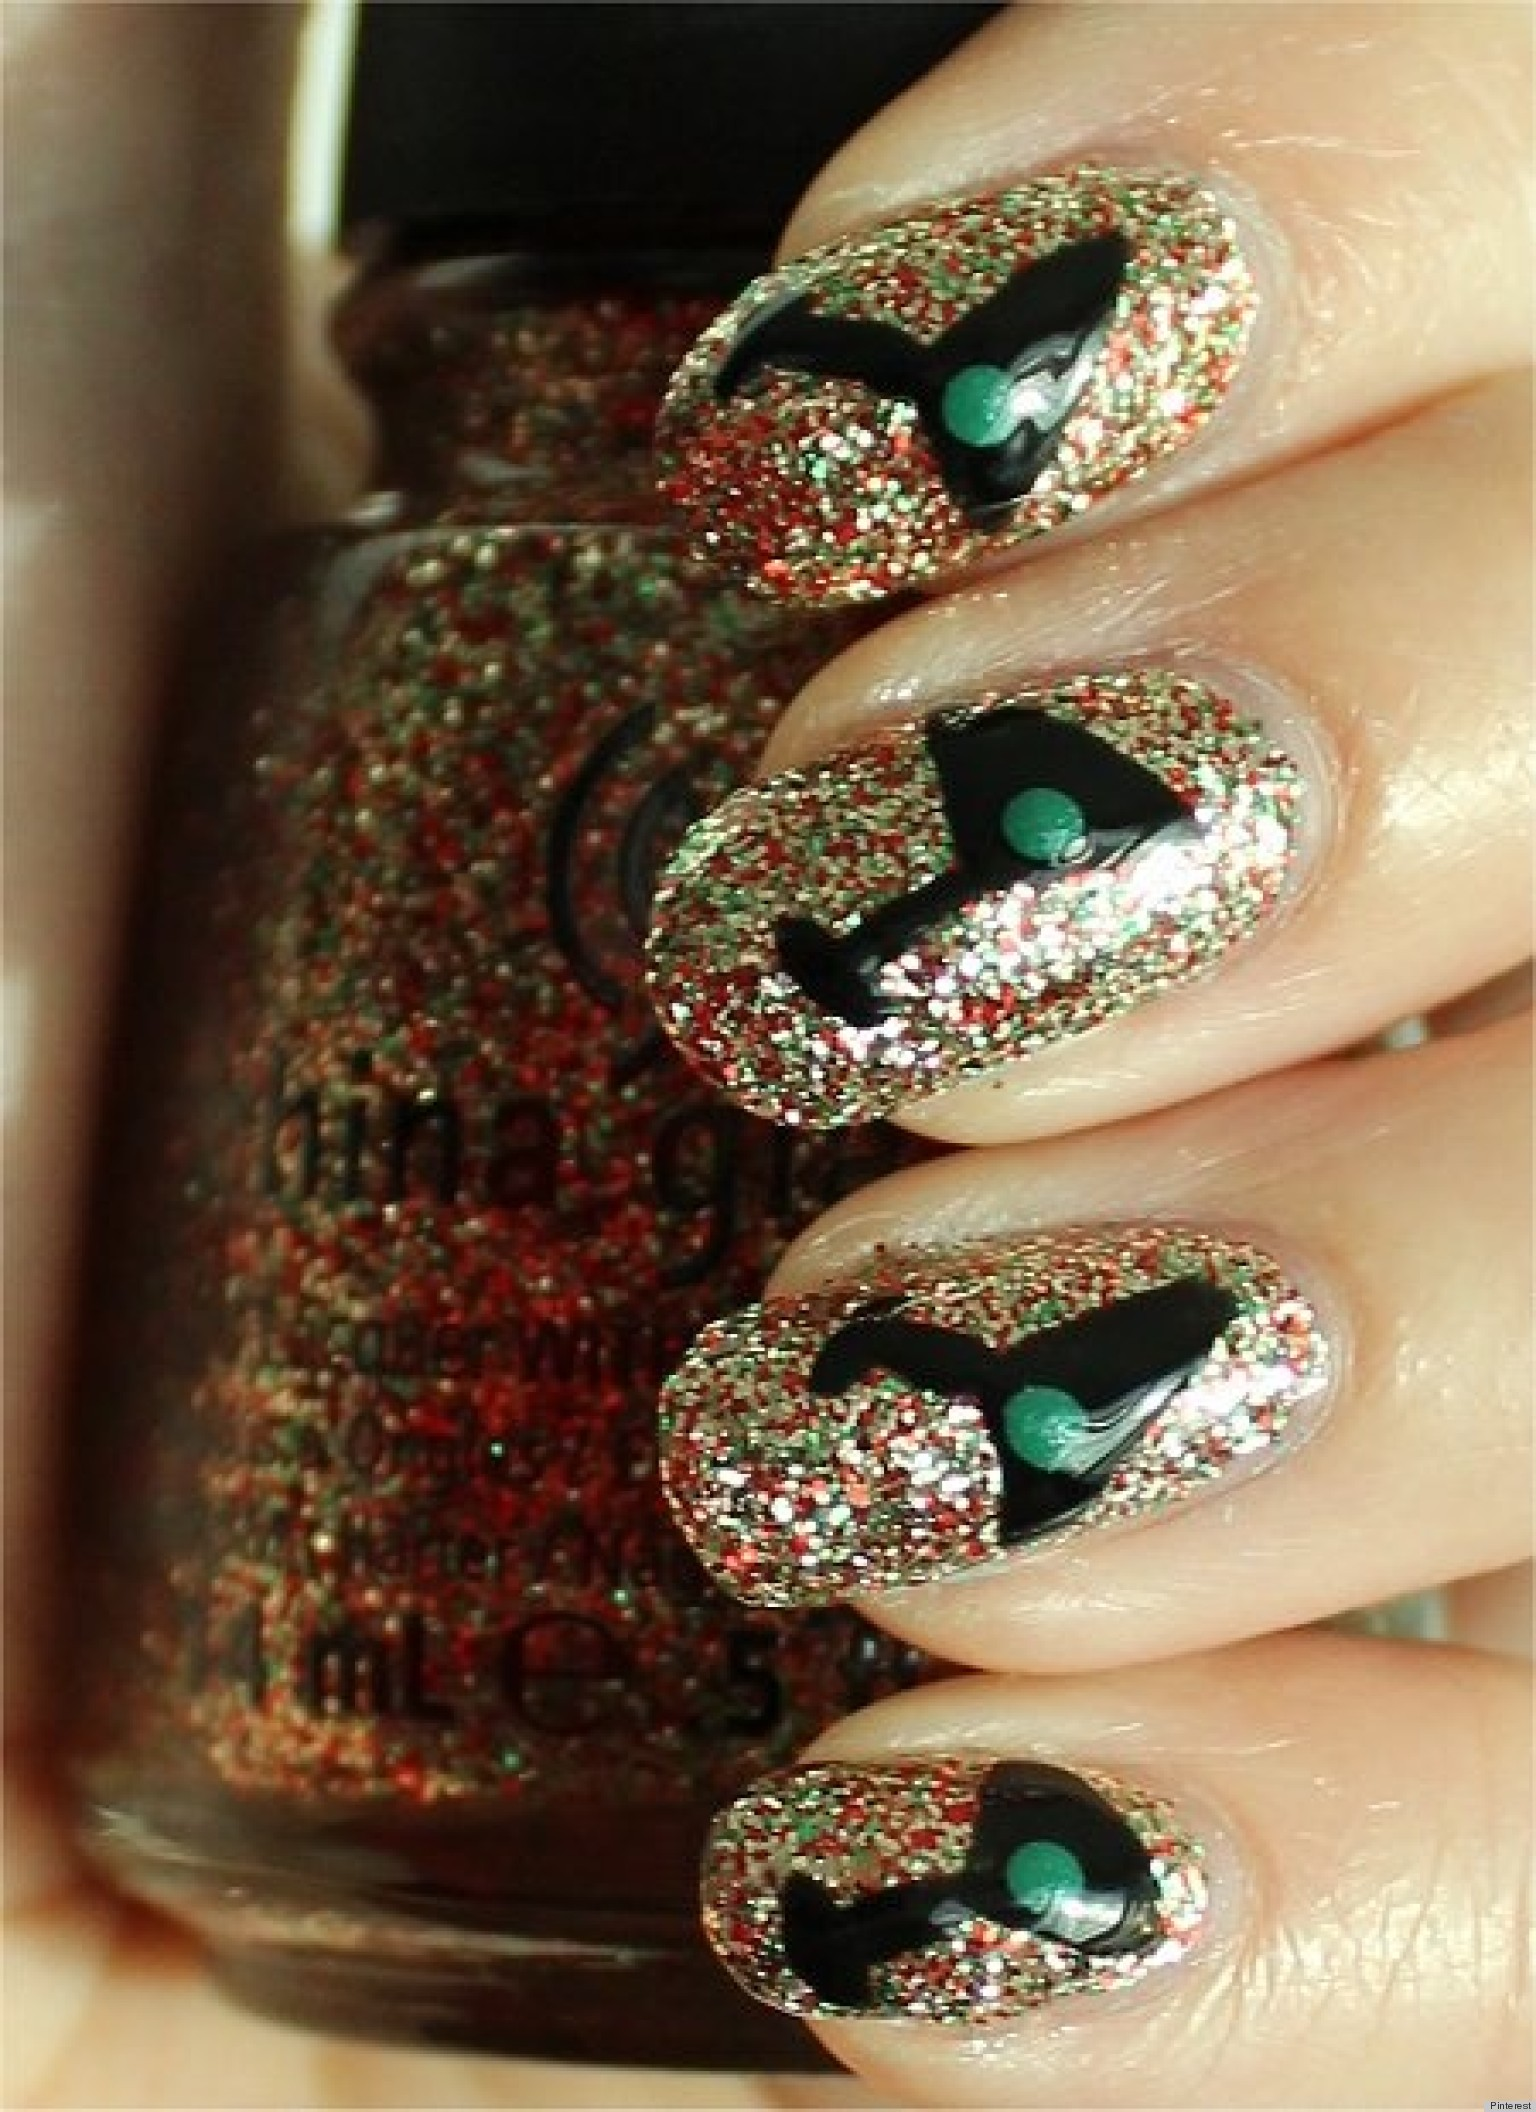 New Year\'s Eve Nail Art Ideas From Pinterest (PHOTOS) | HuffPost